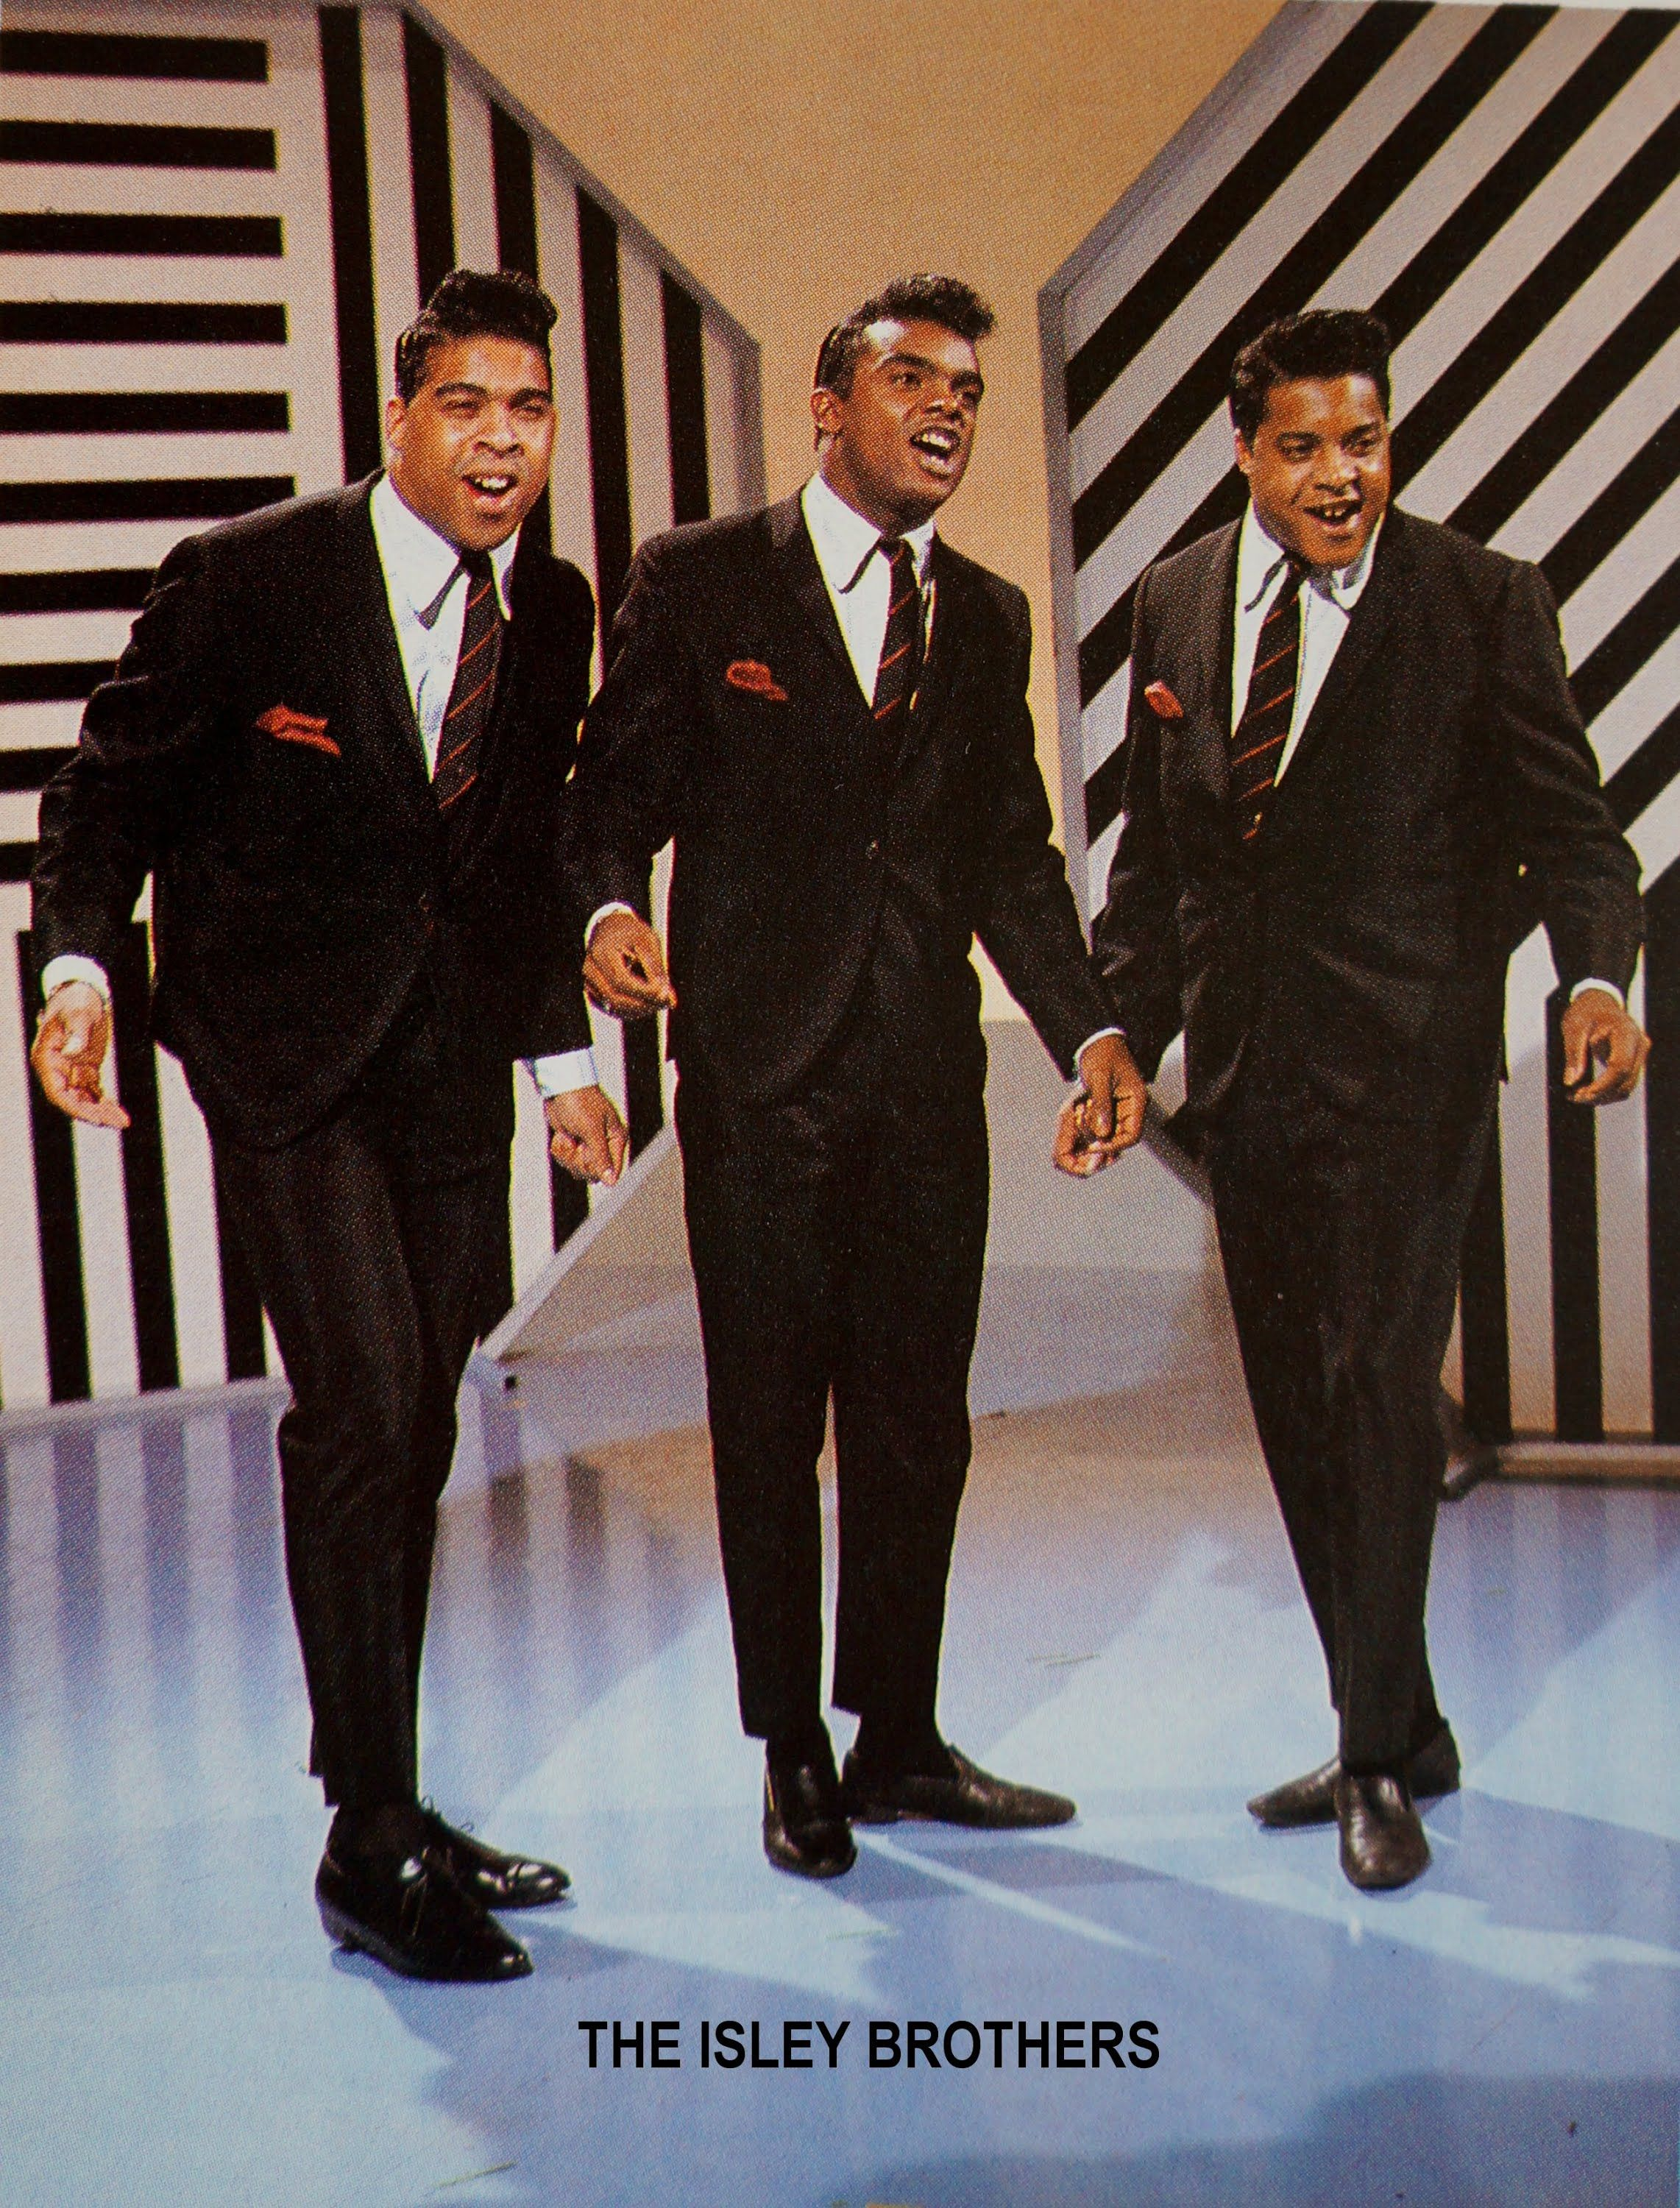 Pin on The Isley Brothers